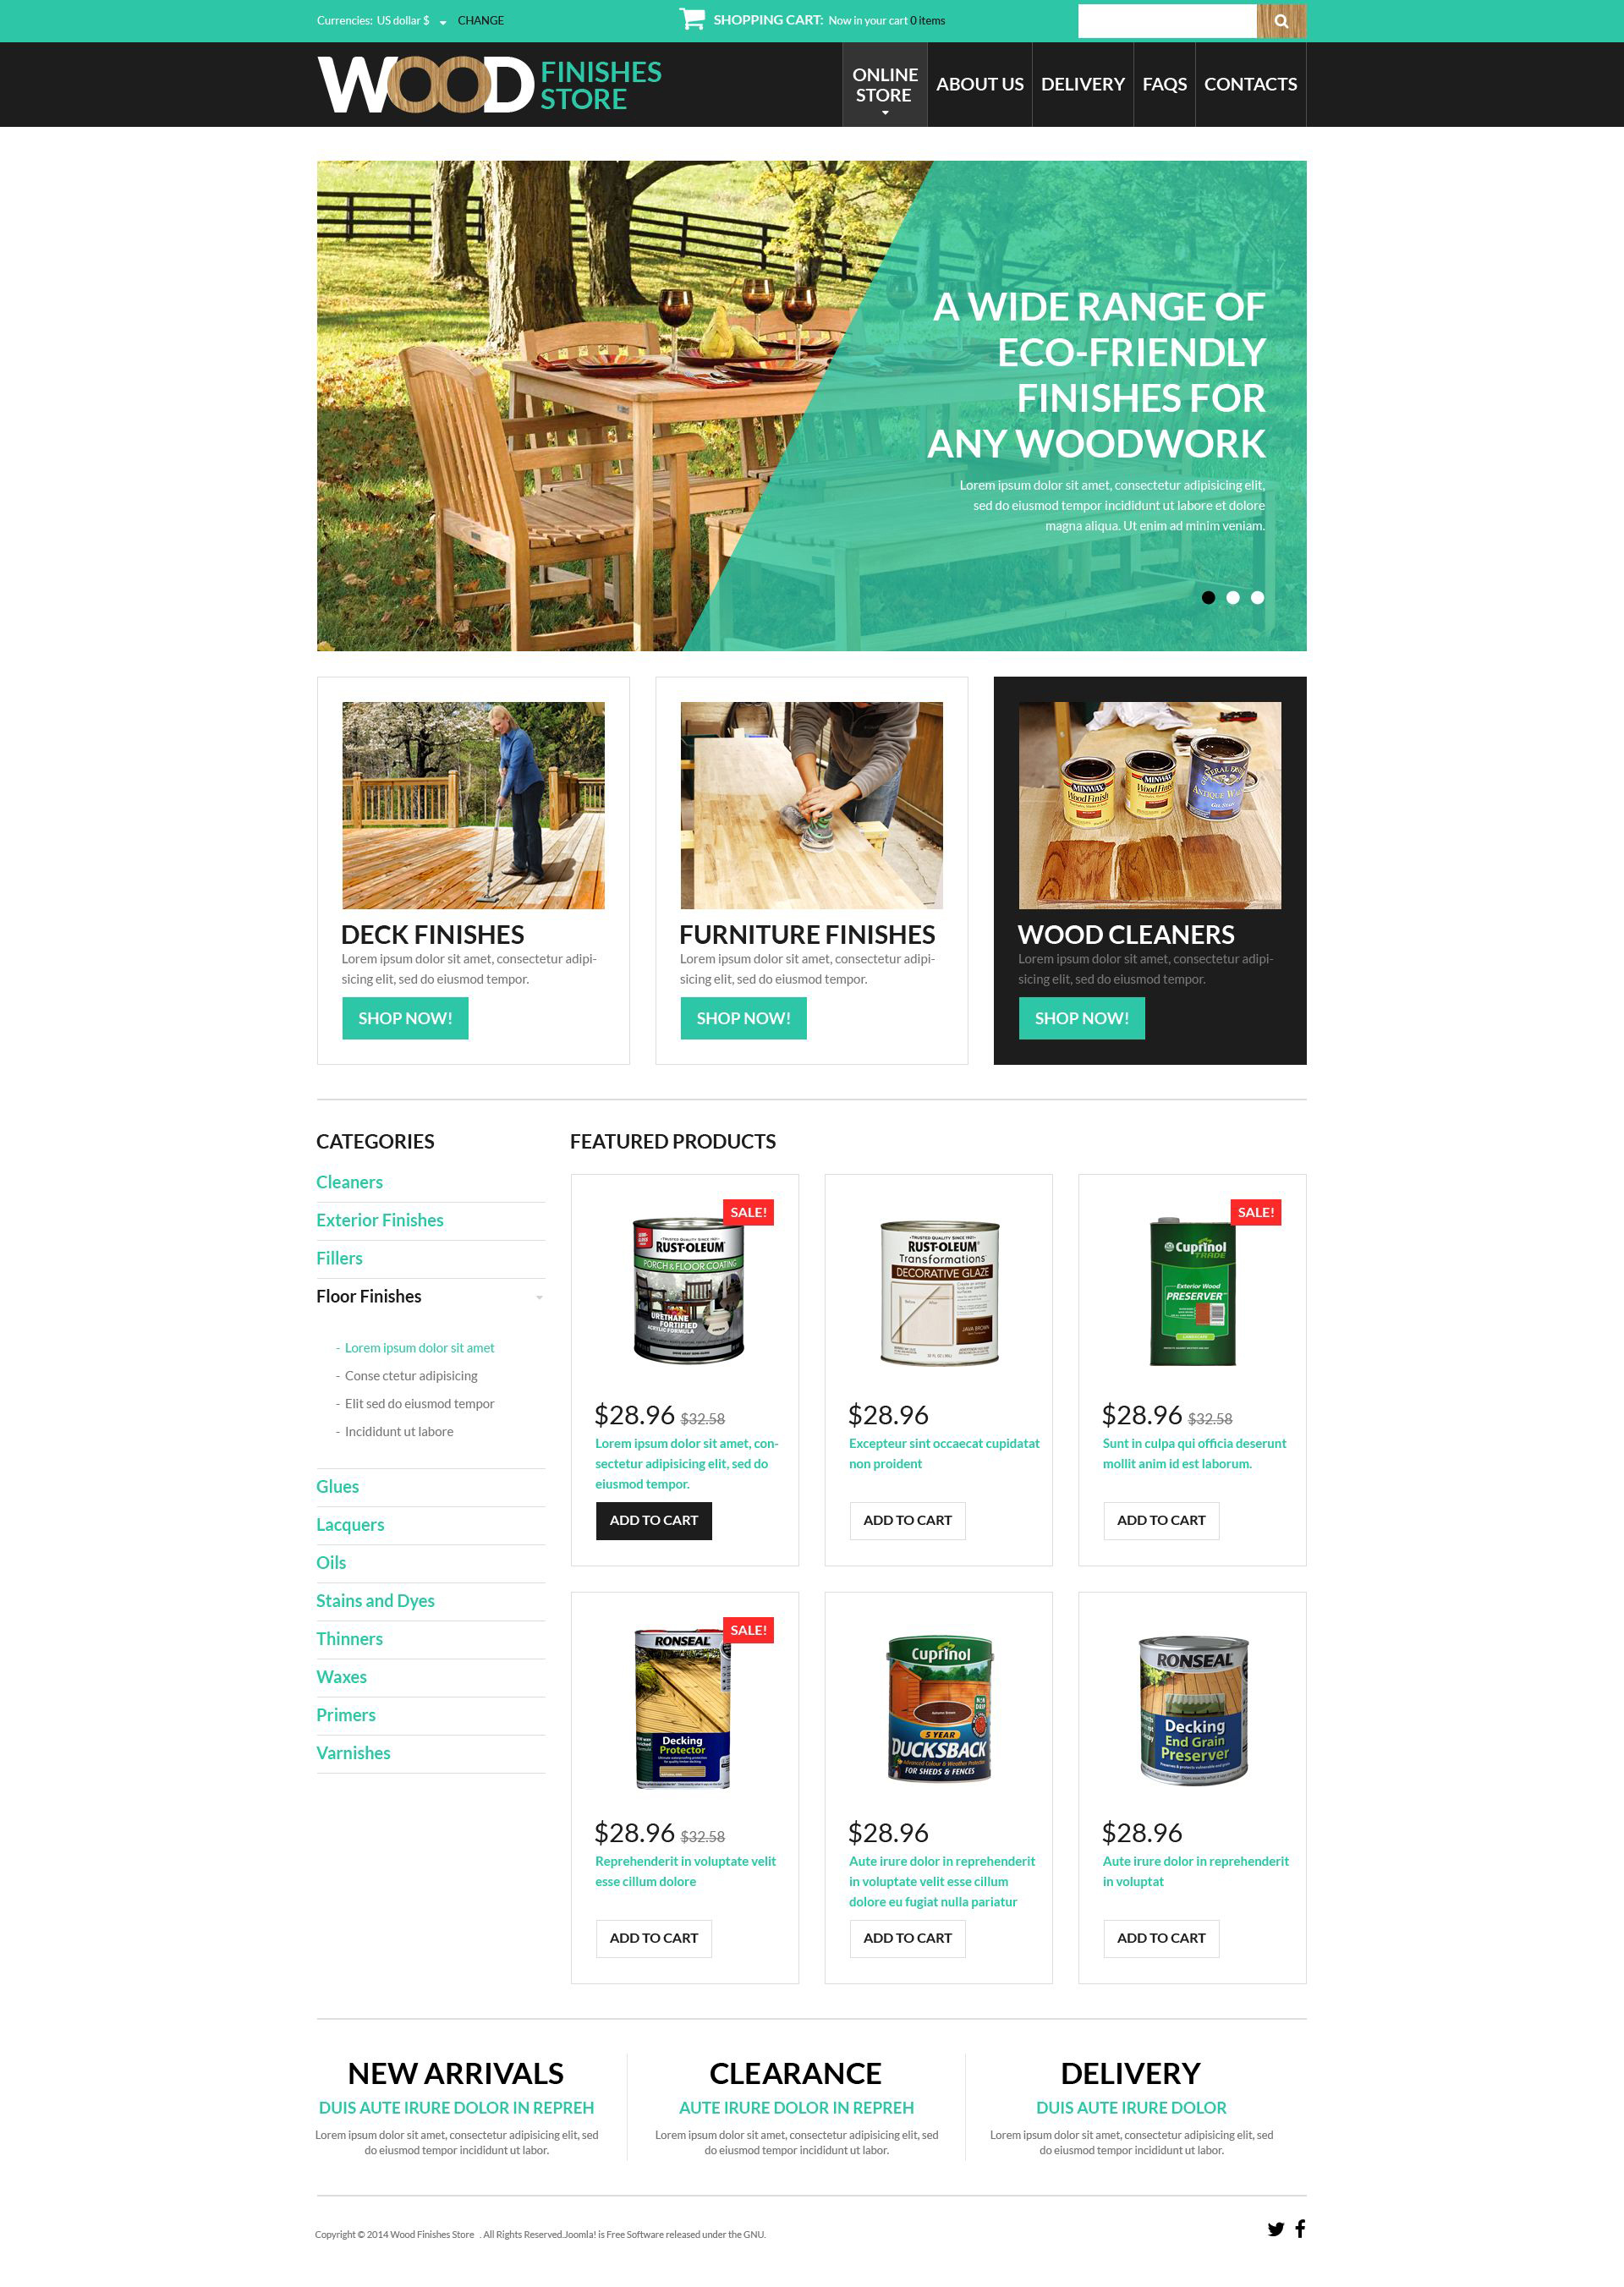 Wood Finishes Store VirtueMart Template